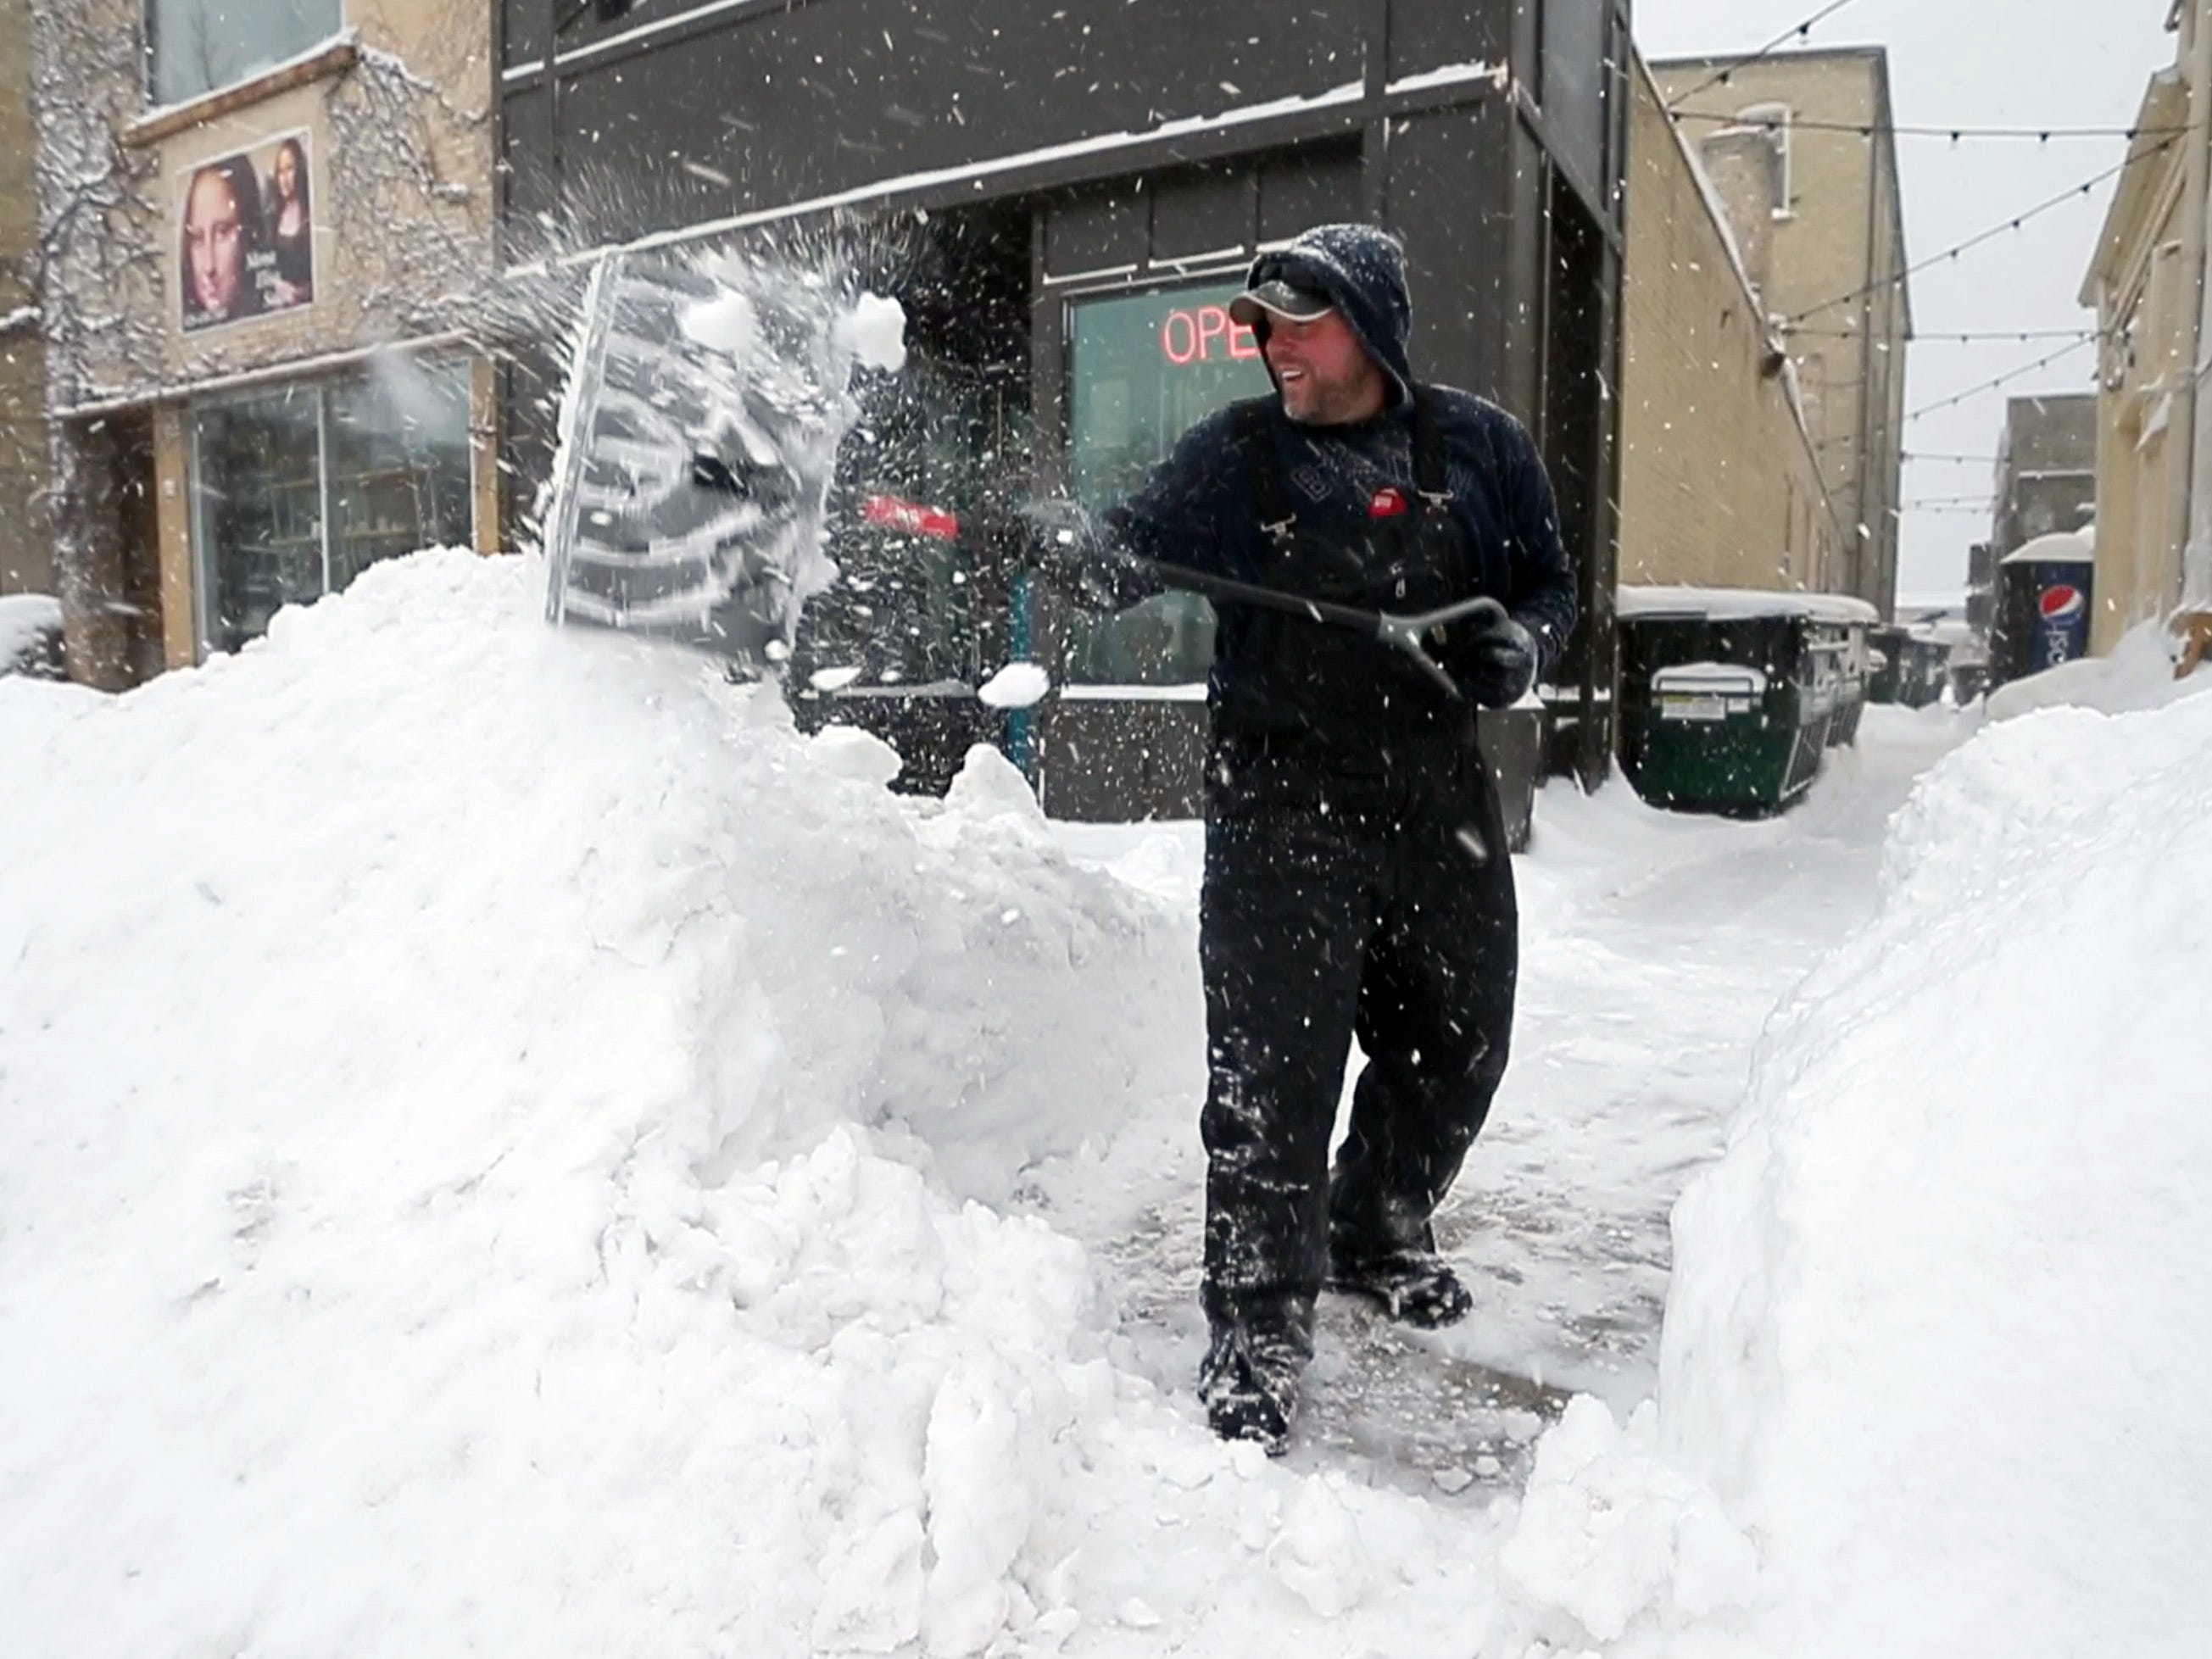 Robert McNitt shovels snow after work in Sheboygan, Wis. McNitt, a snow plow operator, said he spent 18 hours moving snow for the City of Sheboygan.